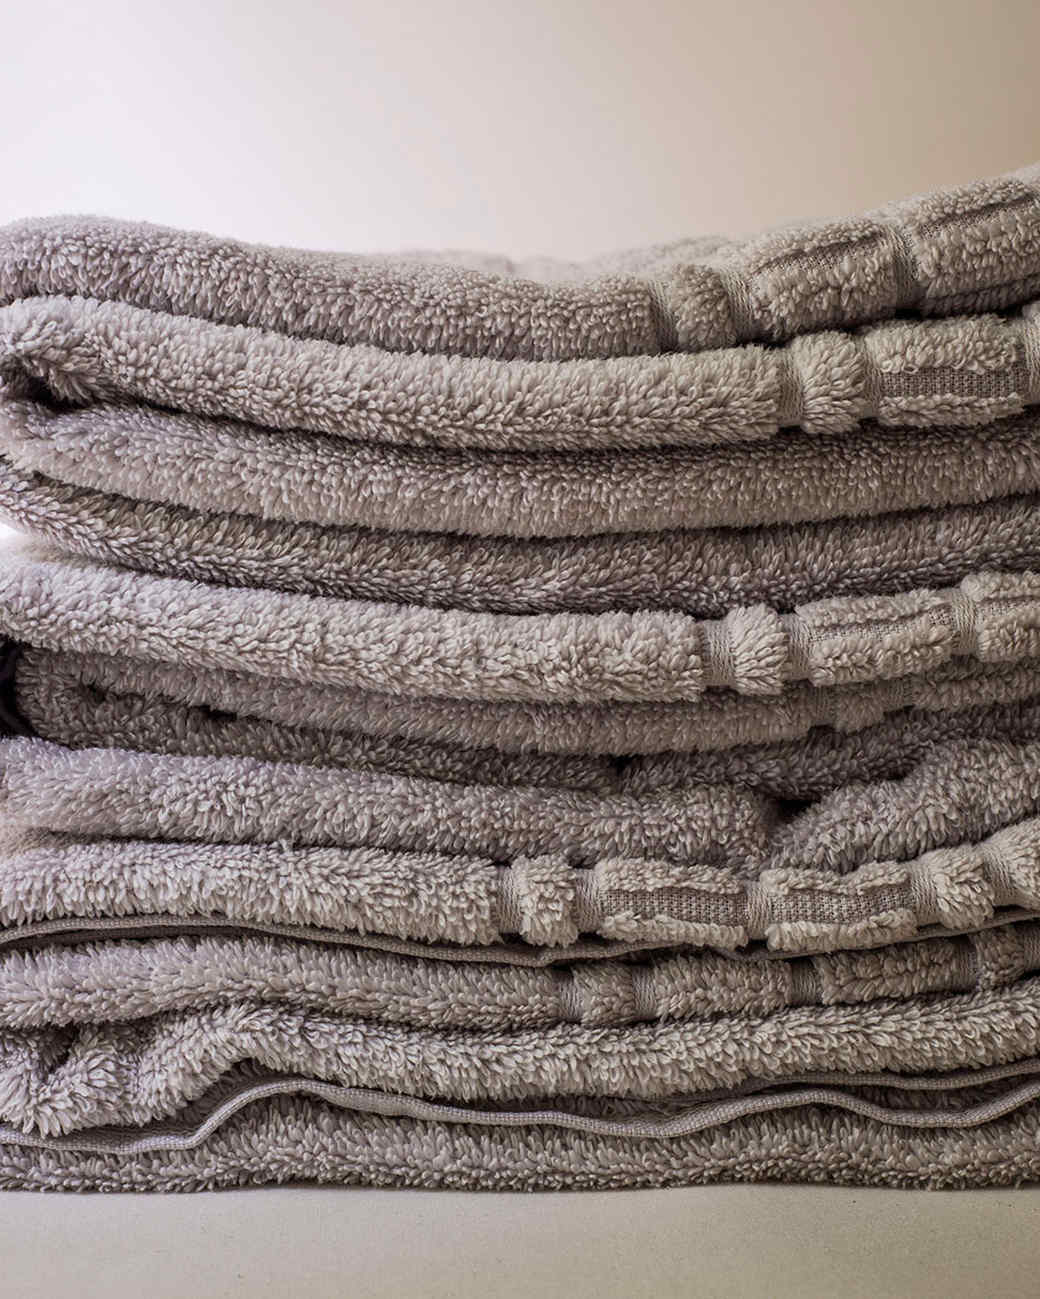 stacked-towels-d110733.jpg